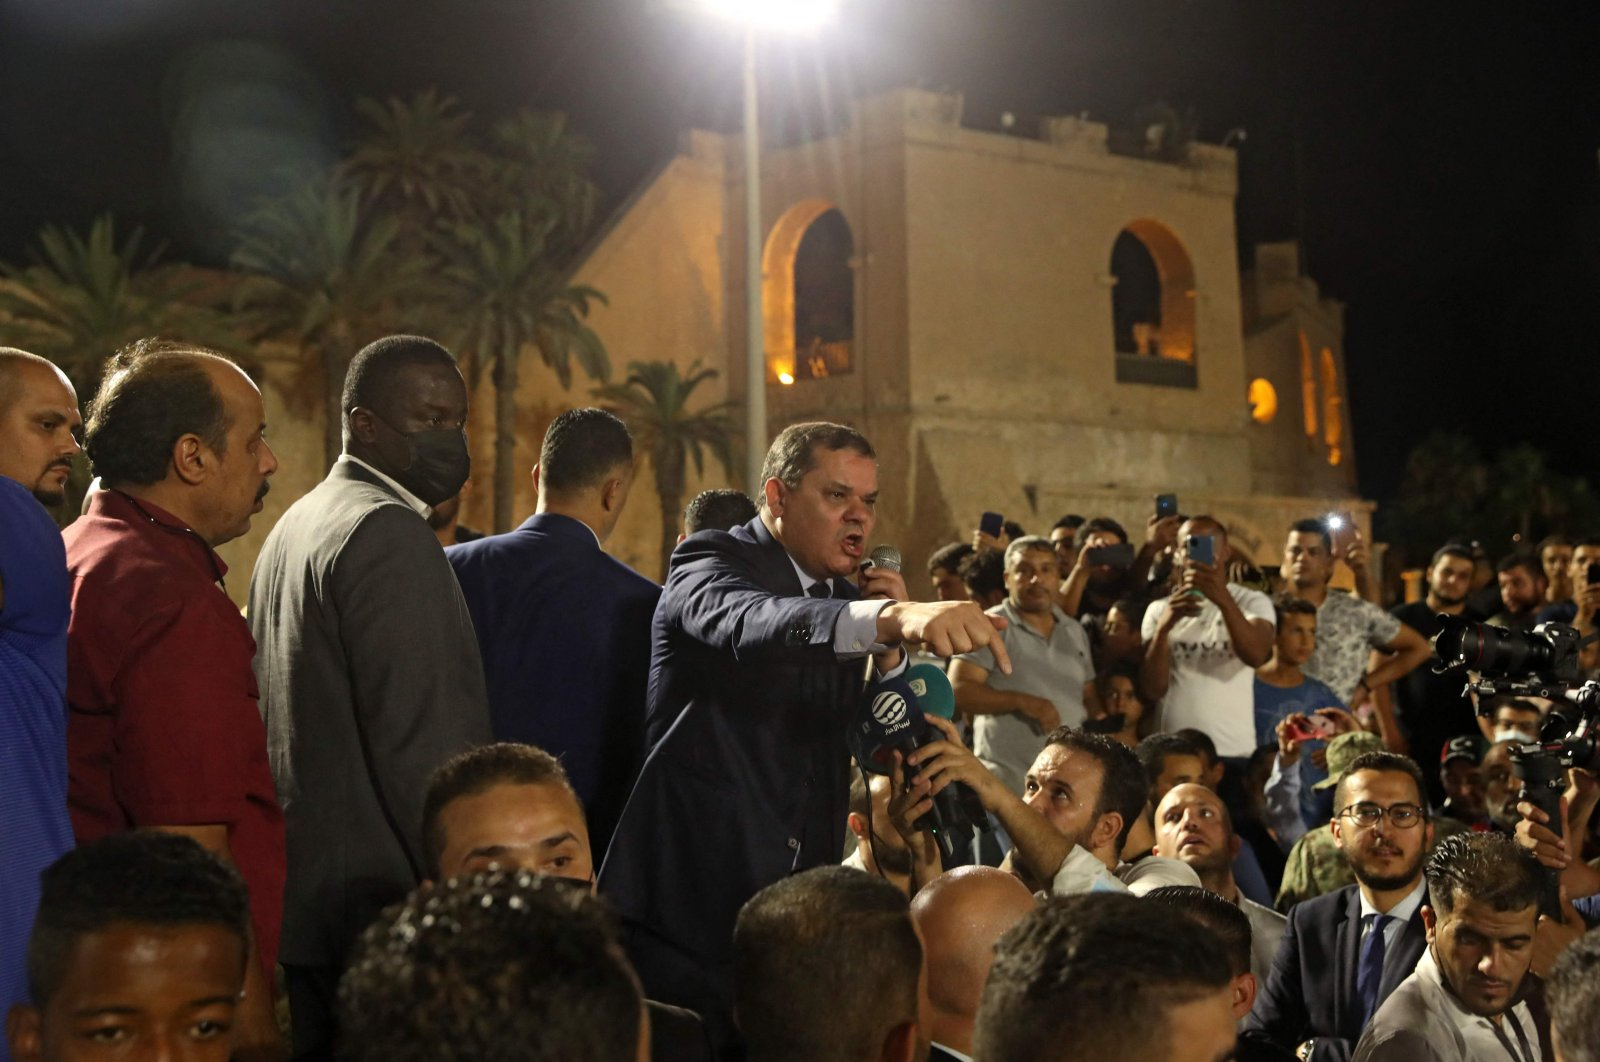 Libya's interim Prime Minister Abdulhamid Dbeibah greets a crowd in Tripoli's Martyrs' Square on September 21, 2021. (AFP Photo)